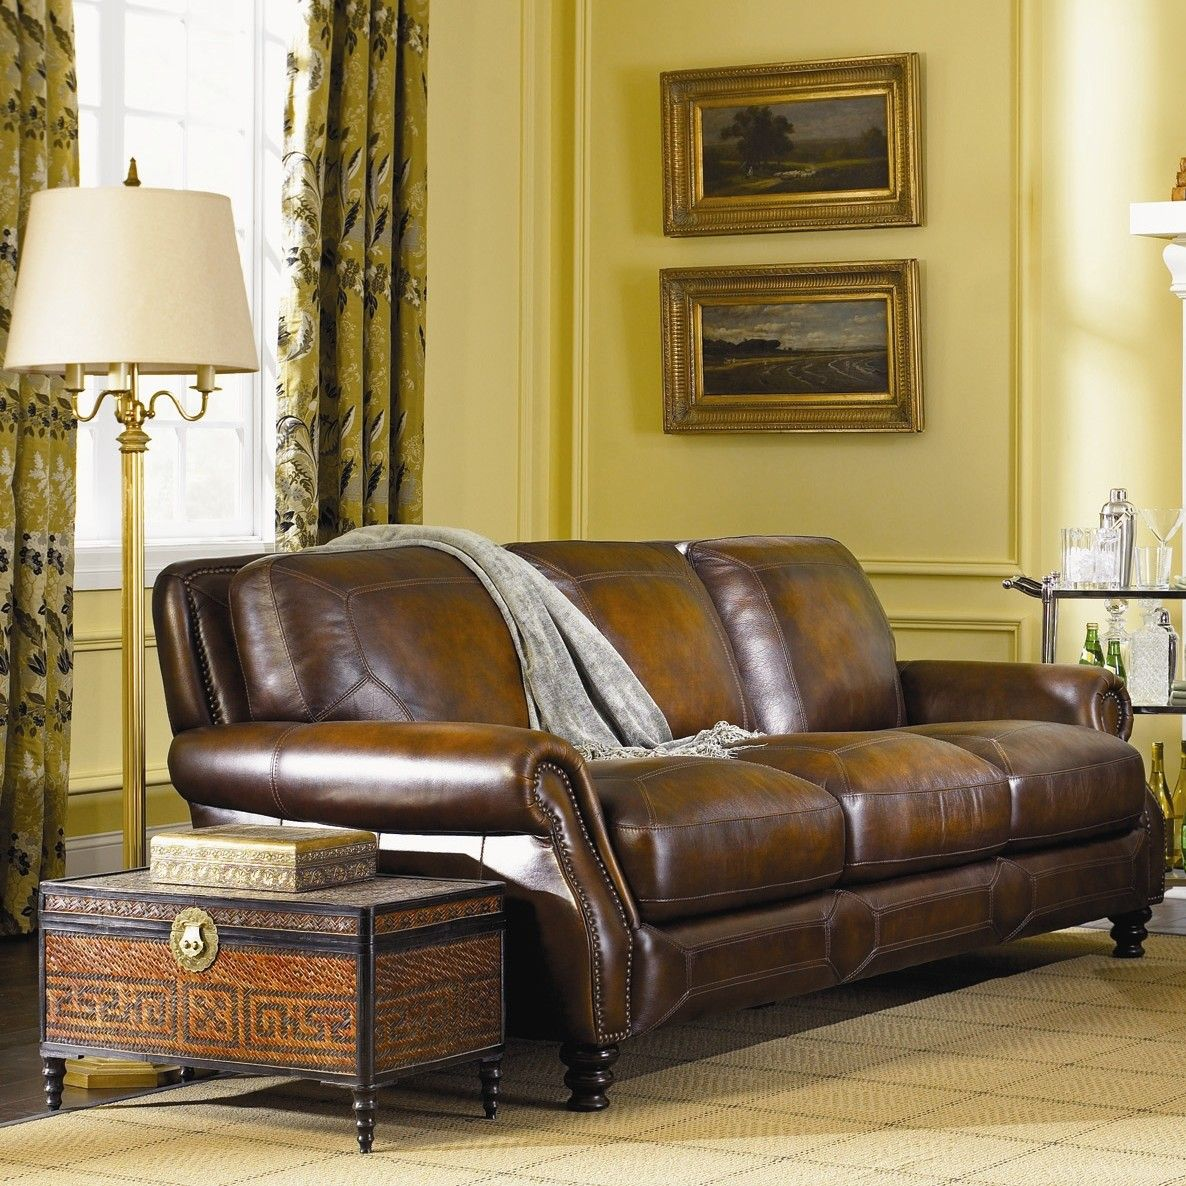 Haley Leather Sofa | Products | Pinterest | Leather sofas